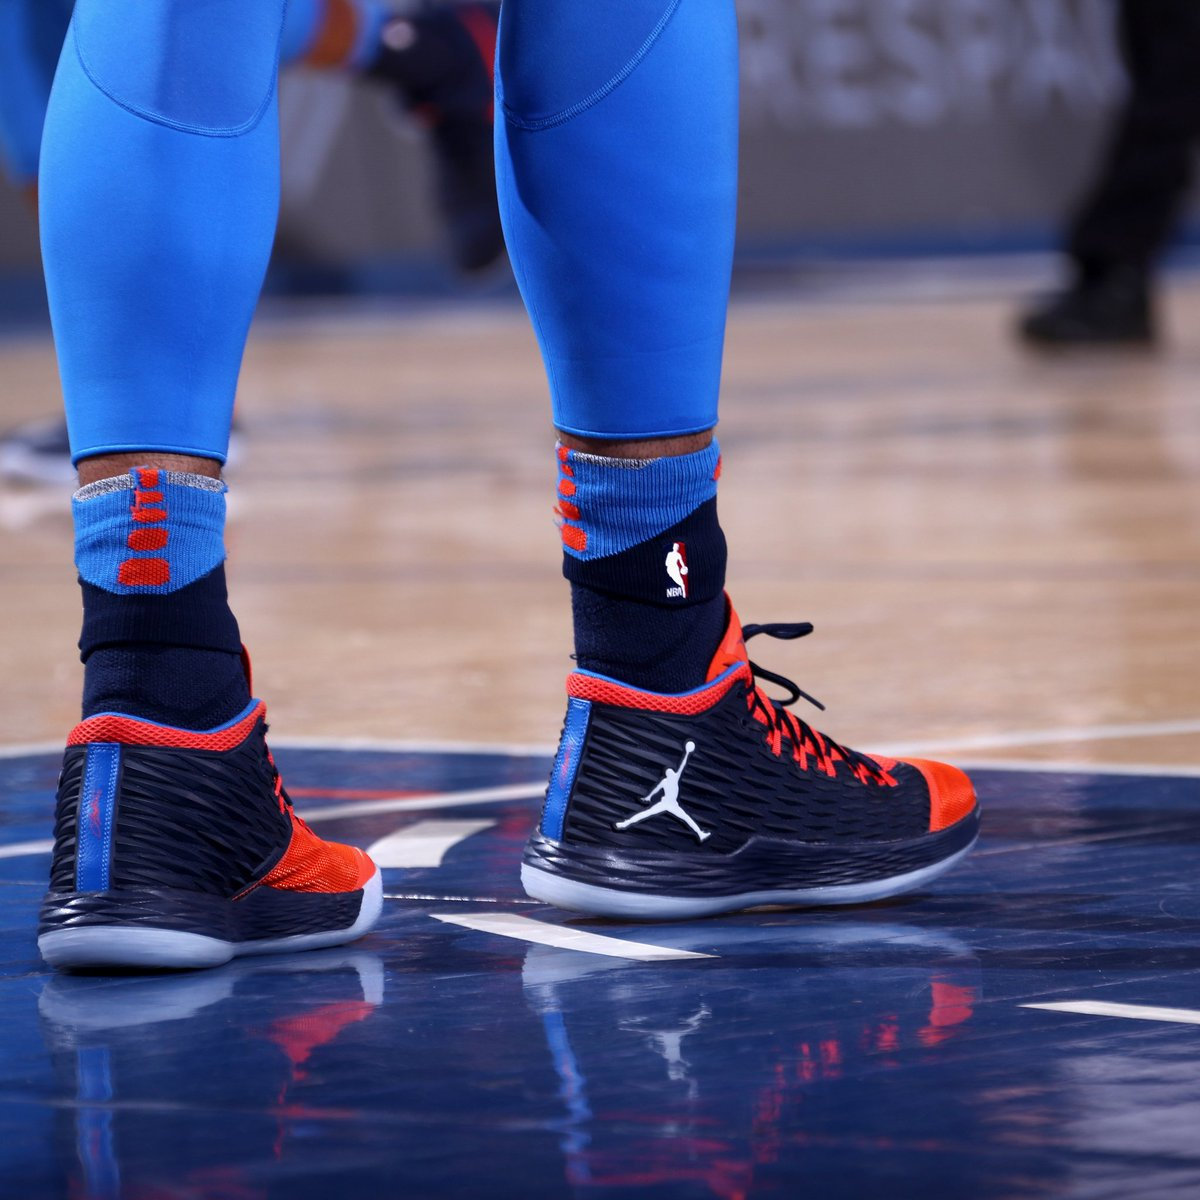 19f416c5517a carmelo makes his return to the garden in the jordan melo m13